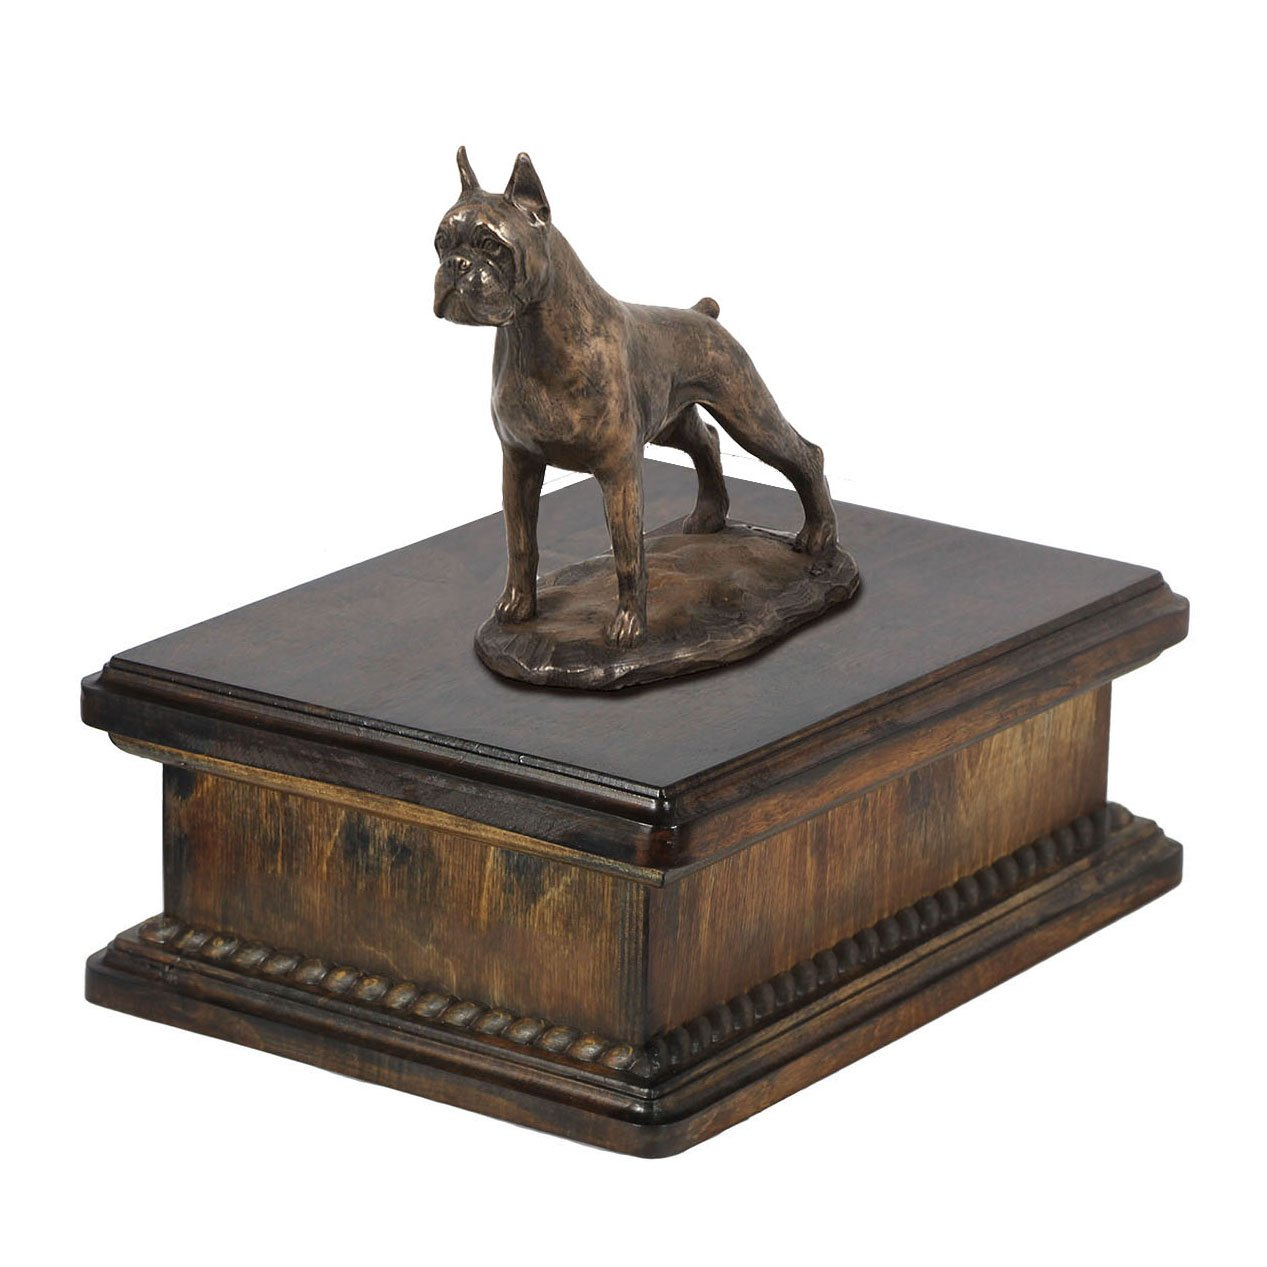 Boxer (cropped), memorial, urn for dog's ashes, with dog statue, exclusive, ArtDog